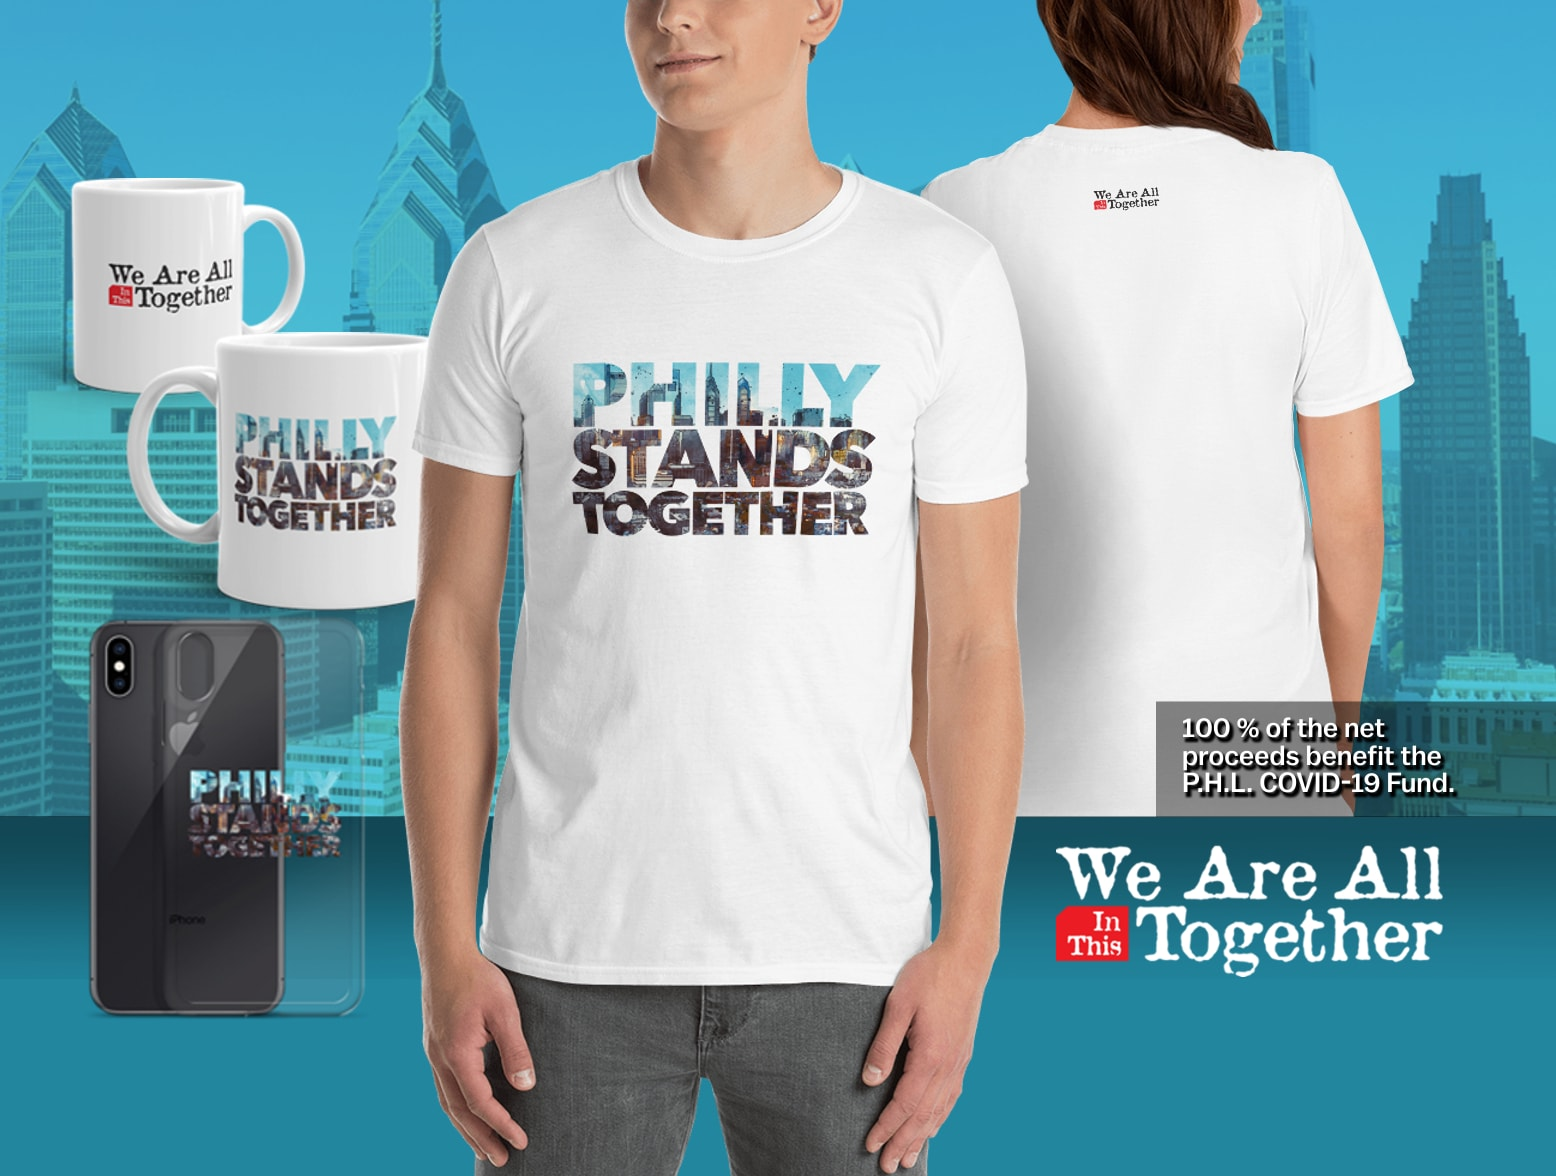 Philly Stands Together charity merchandise